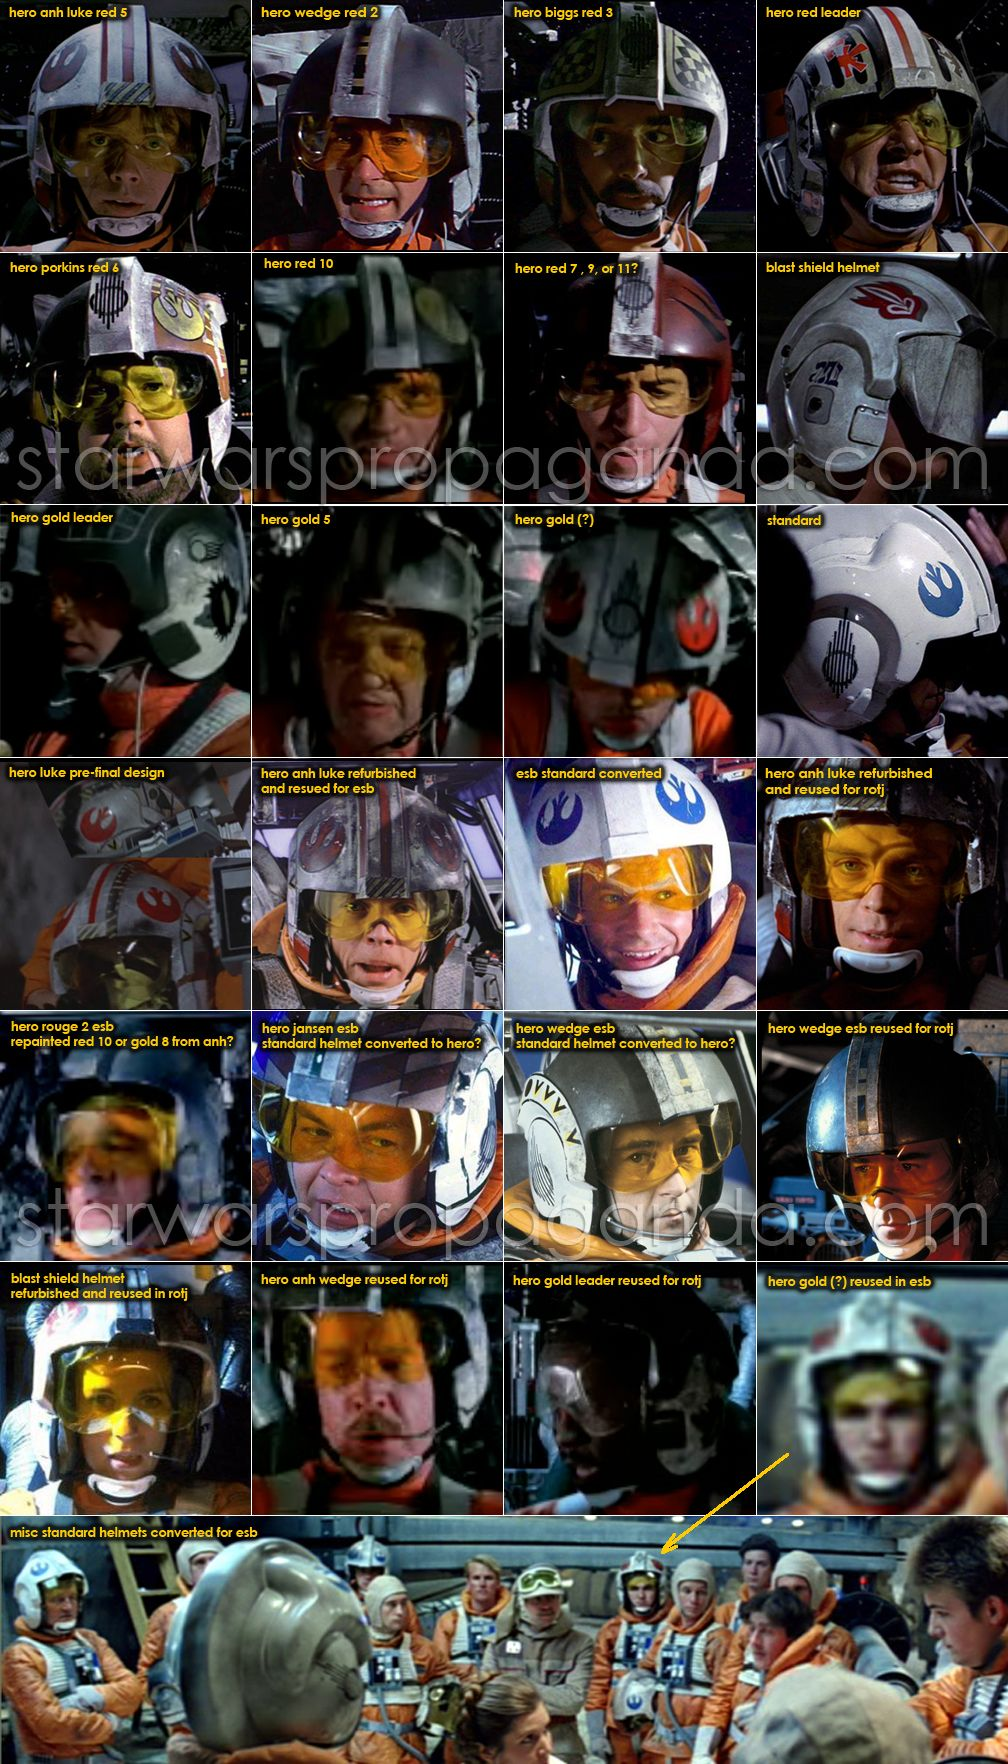 Star wars rebels compliation